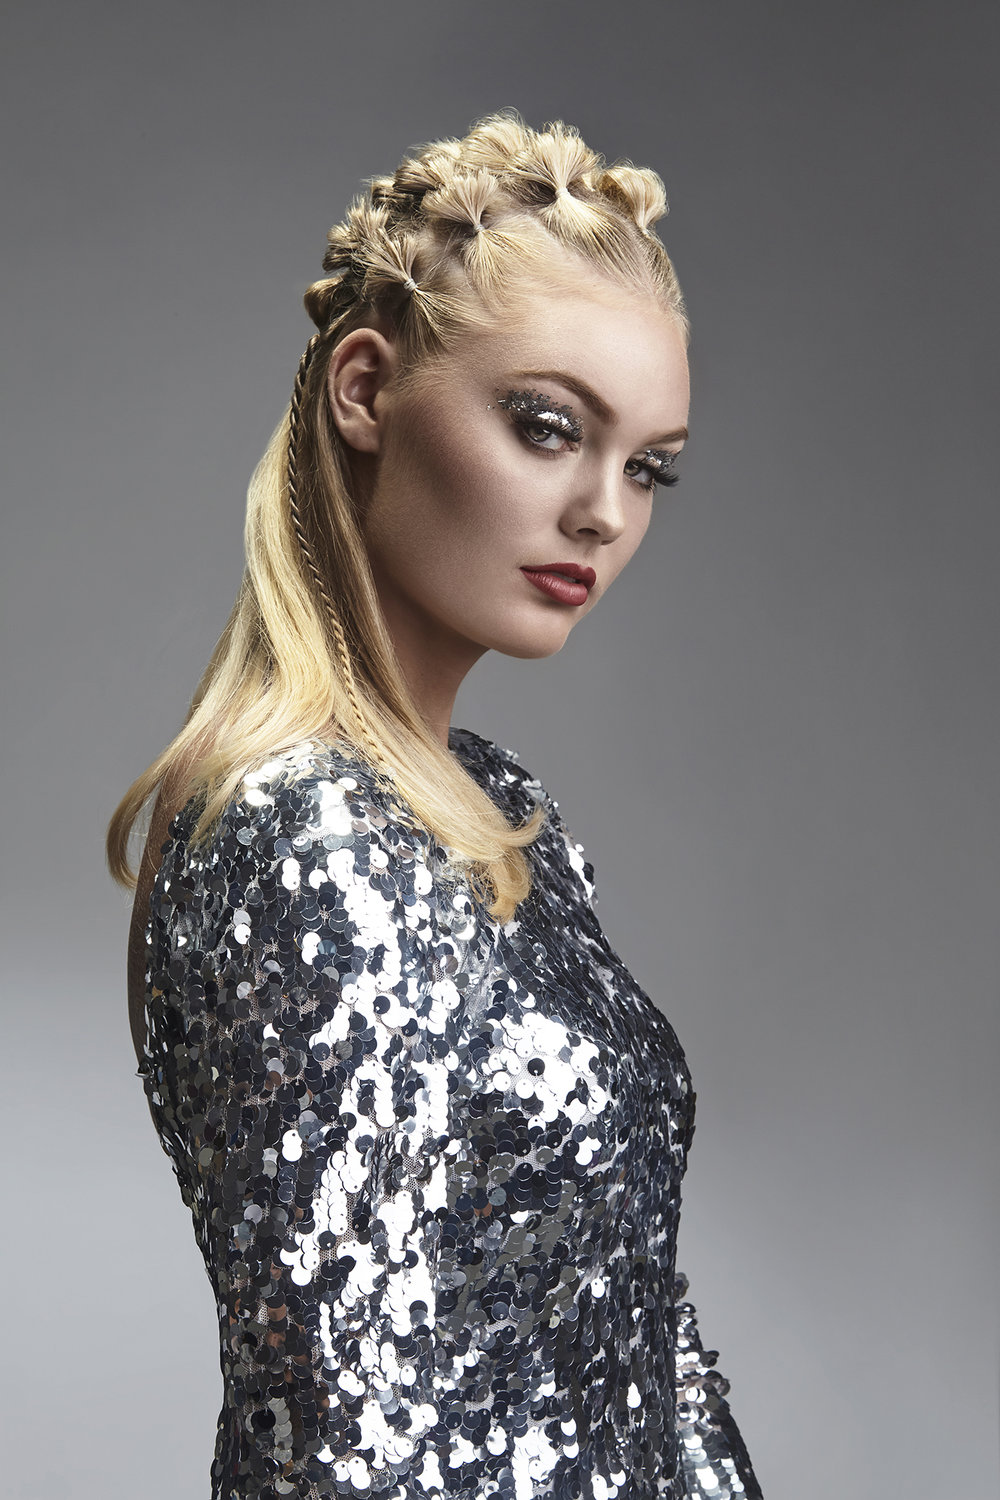 Fall-Hair-Collection-Shoot-for-Studio-Alf-Frisør-by-Dana-Cole-Photography-sequined-silver-dress-blonde-hair-red-lipstick-advertising.jpg